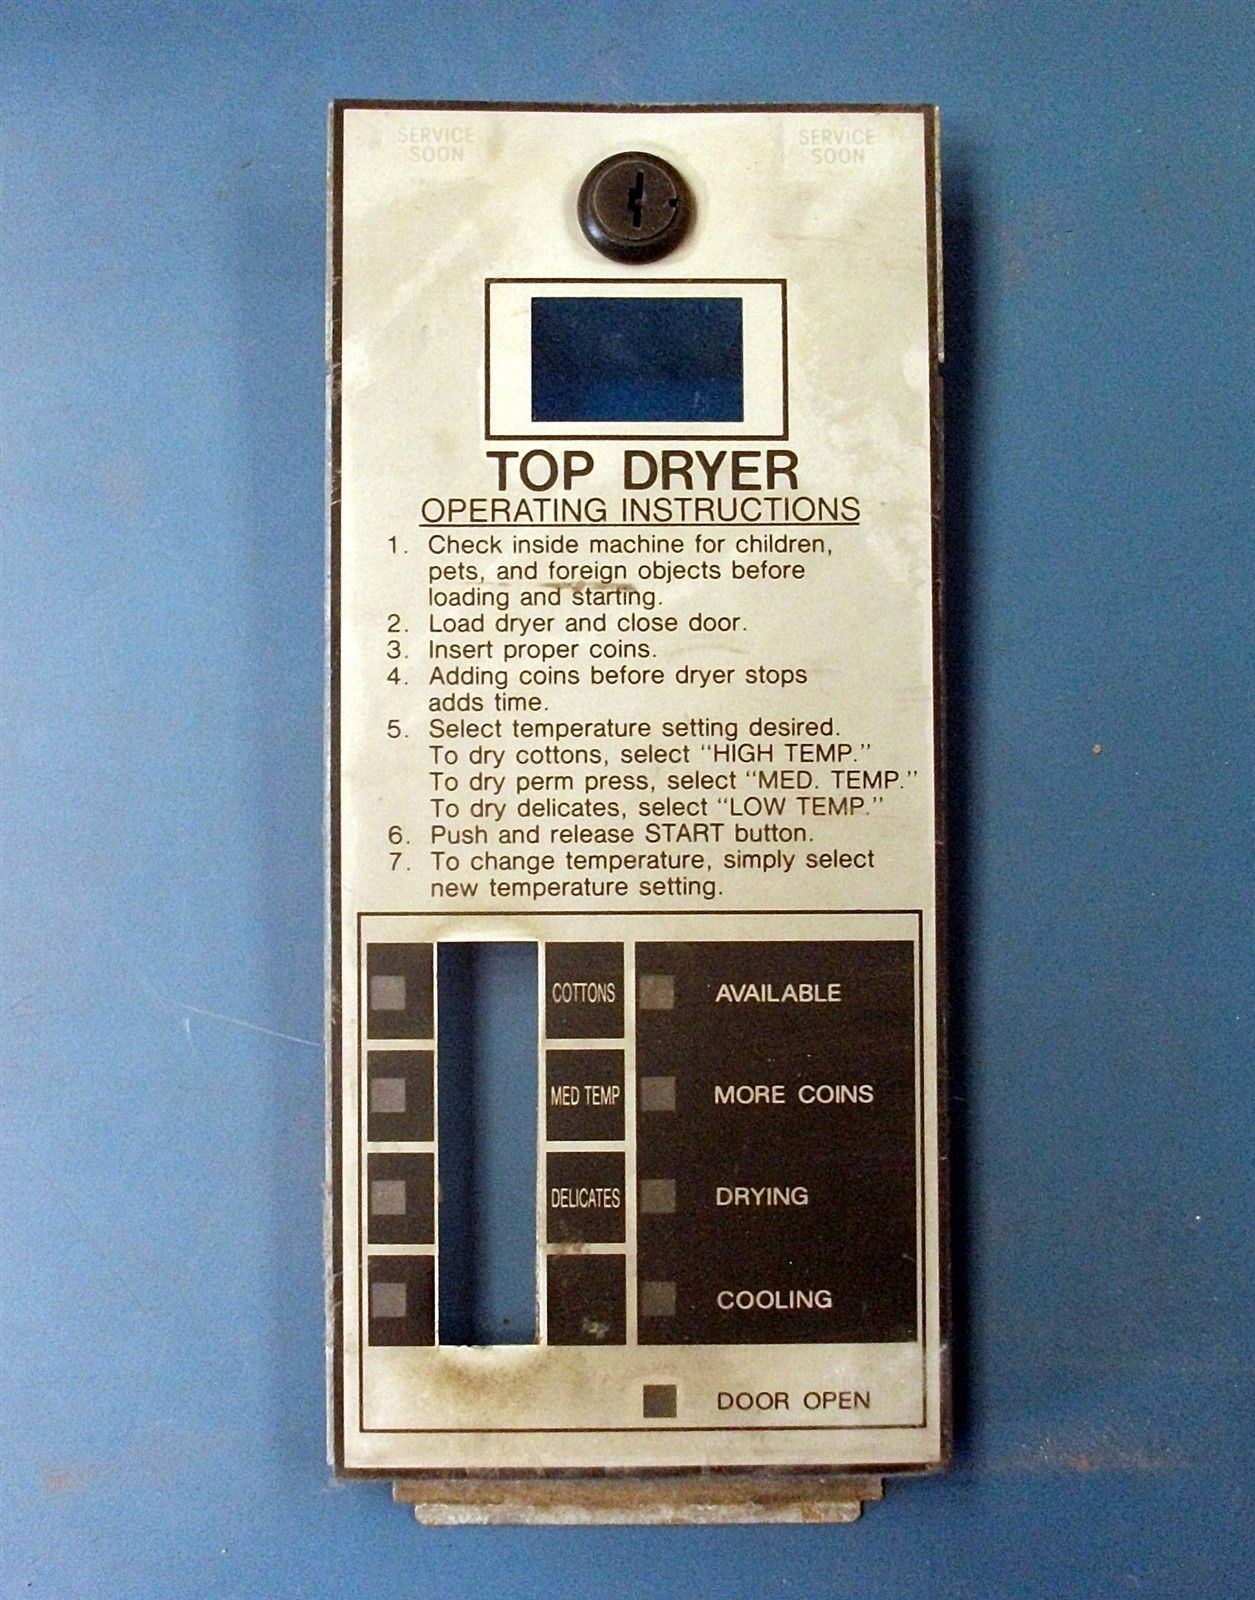 Huebsch Speed Queen Huebsch Upper Dryer Control Faceplate Model jtd32dg